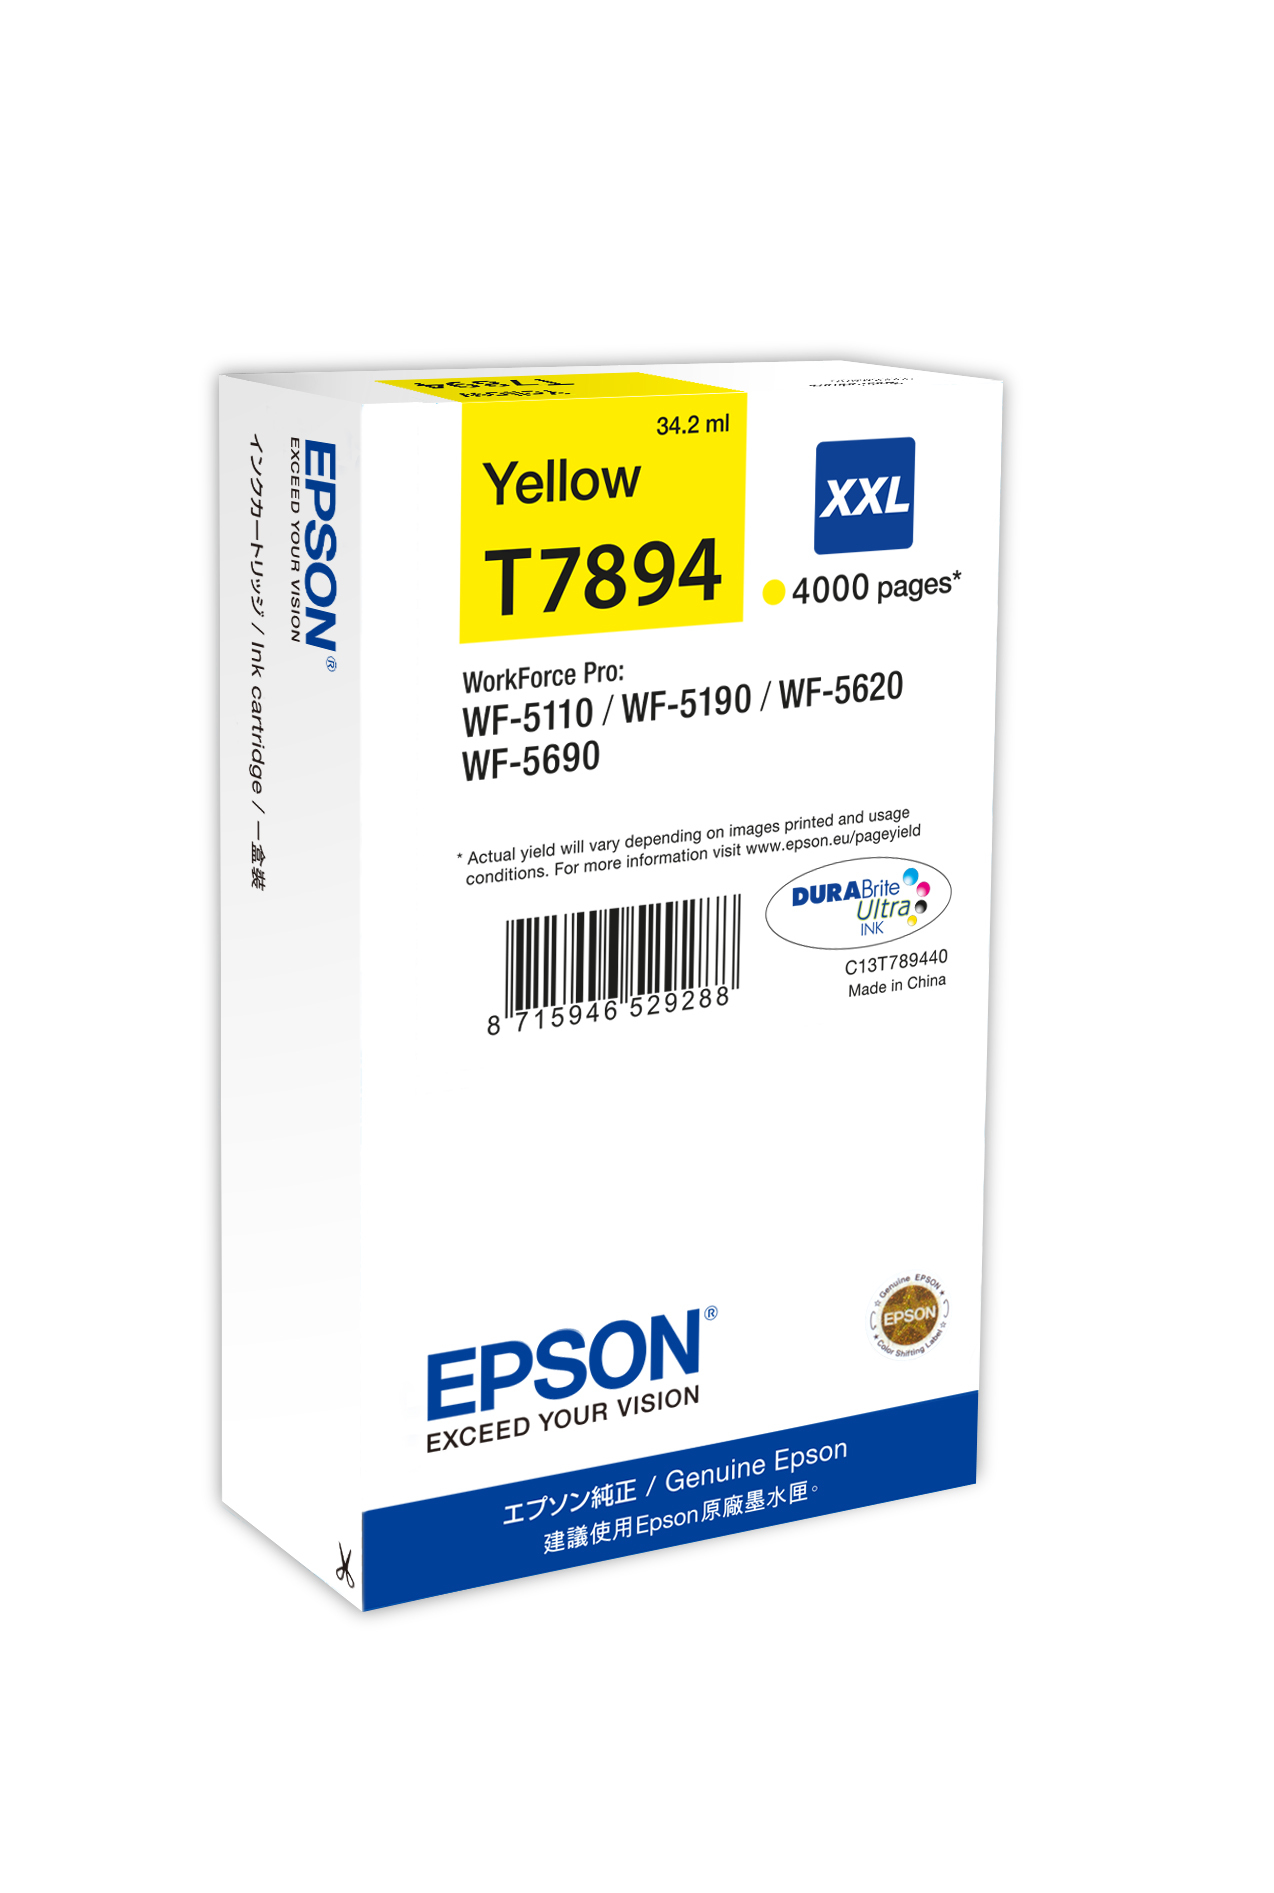 Epst78944010   Epson Wf5000 Series Xxl Yellow 1 X 34ml                                                     - UF01